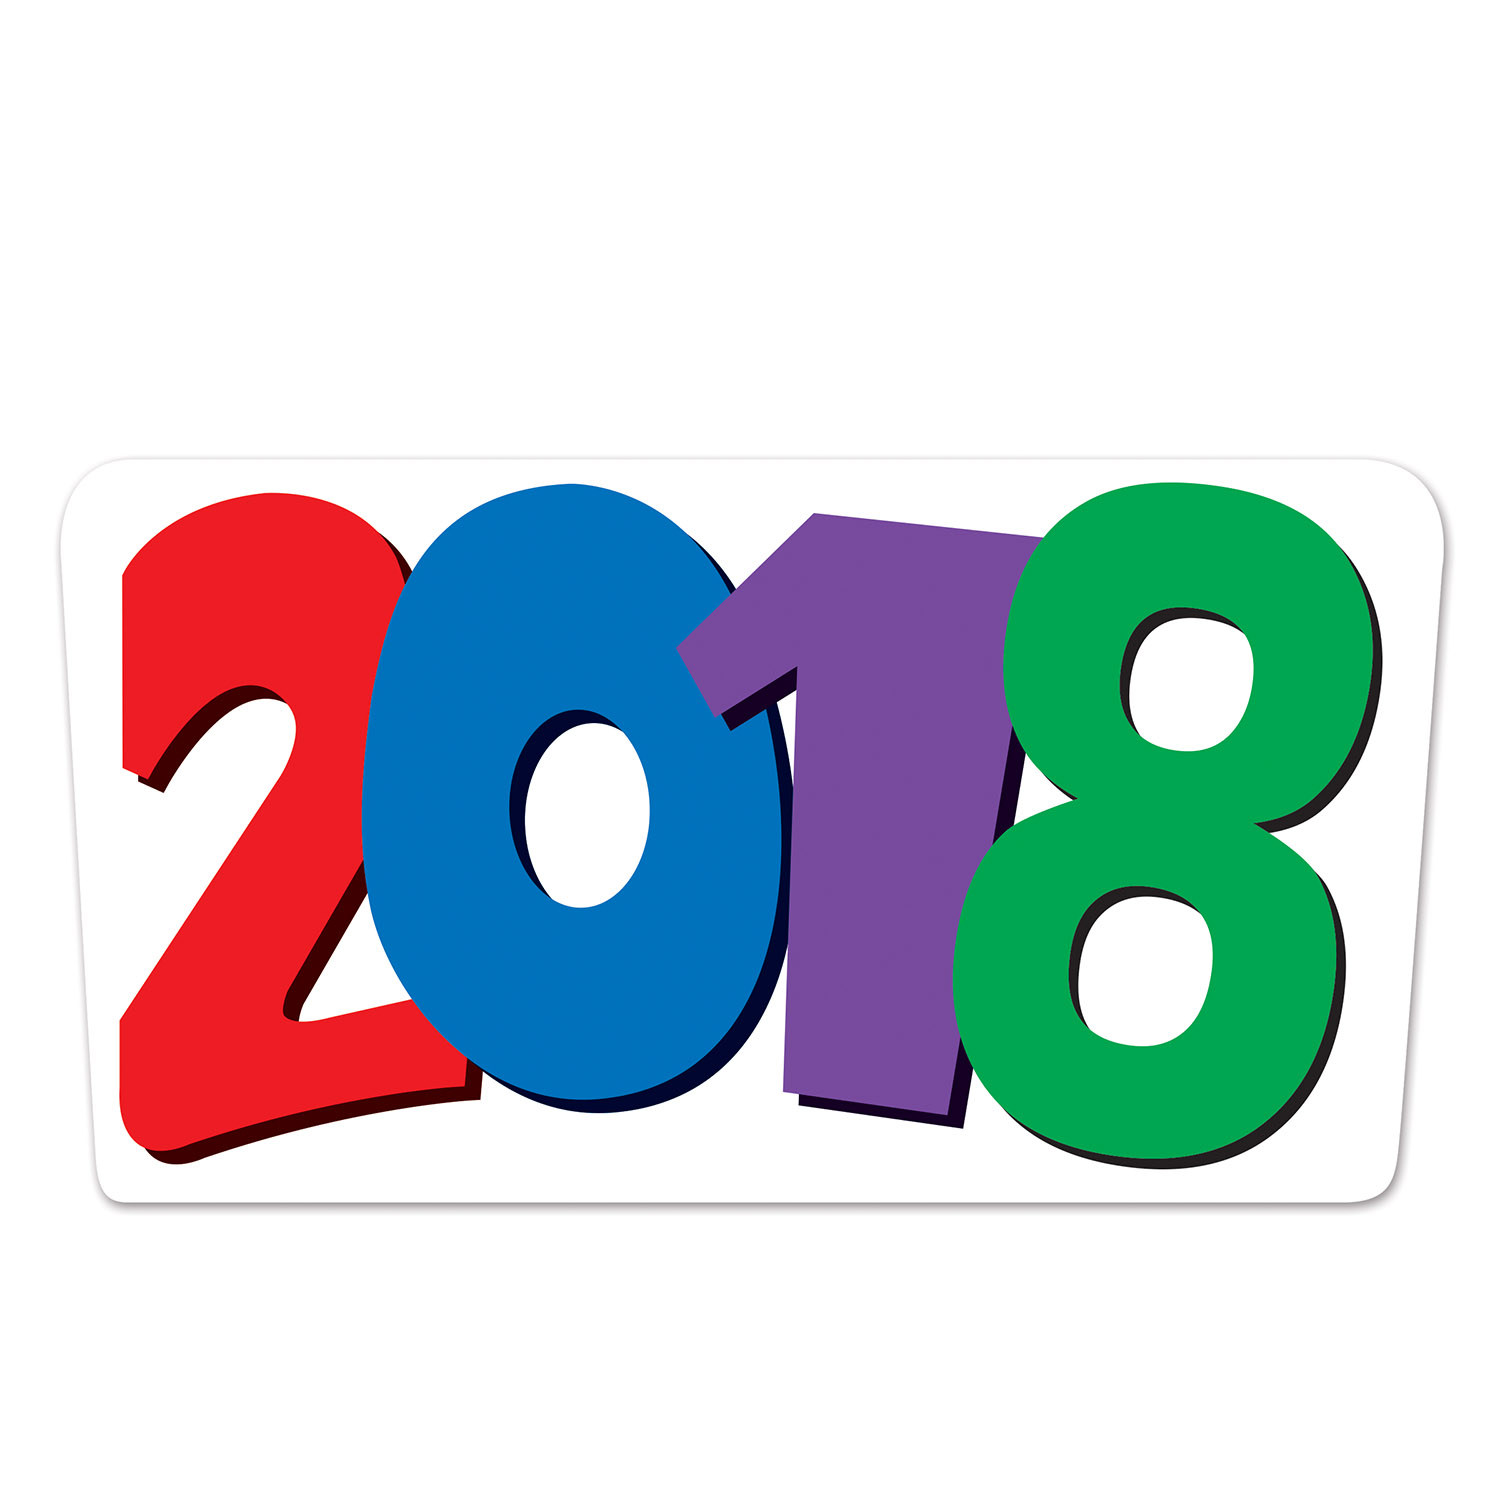 2018  Cutout (Pack of 12) 2018  Cutout, decoration, new years eve, multi-color, wholesale, inexpensive, bulk